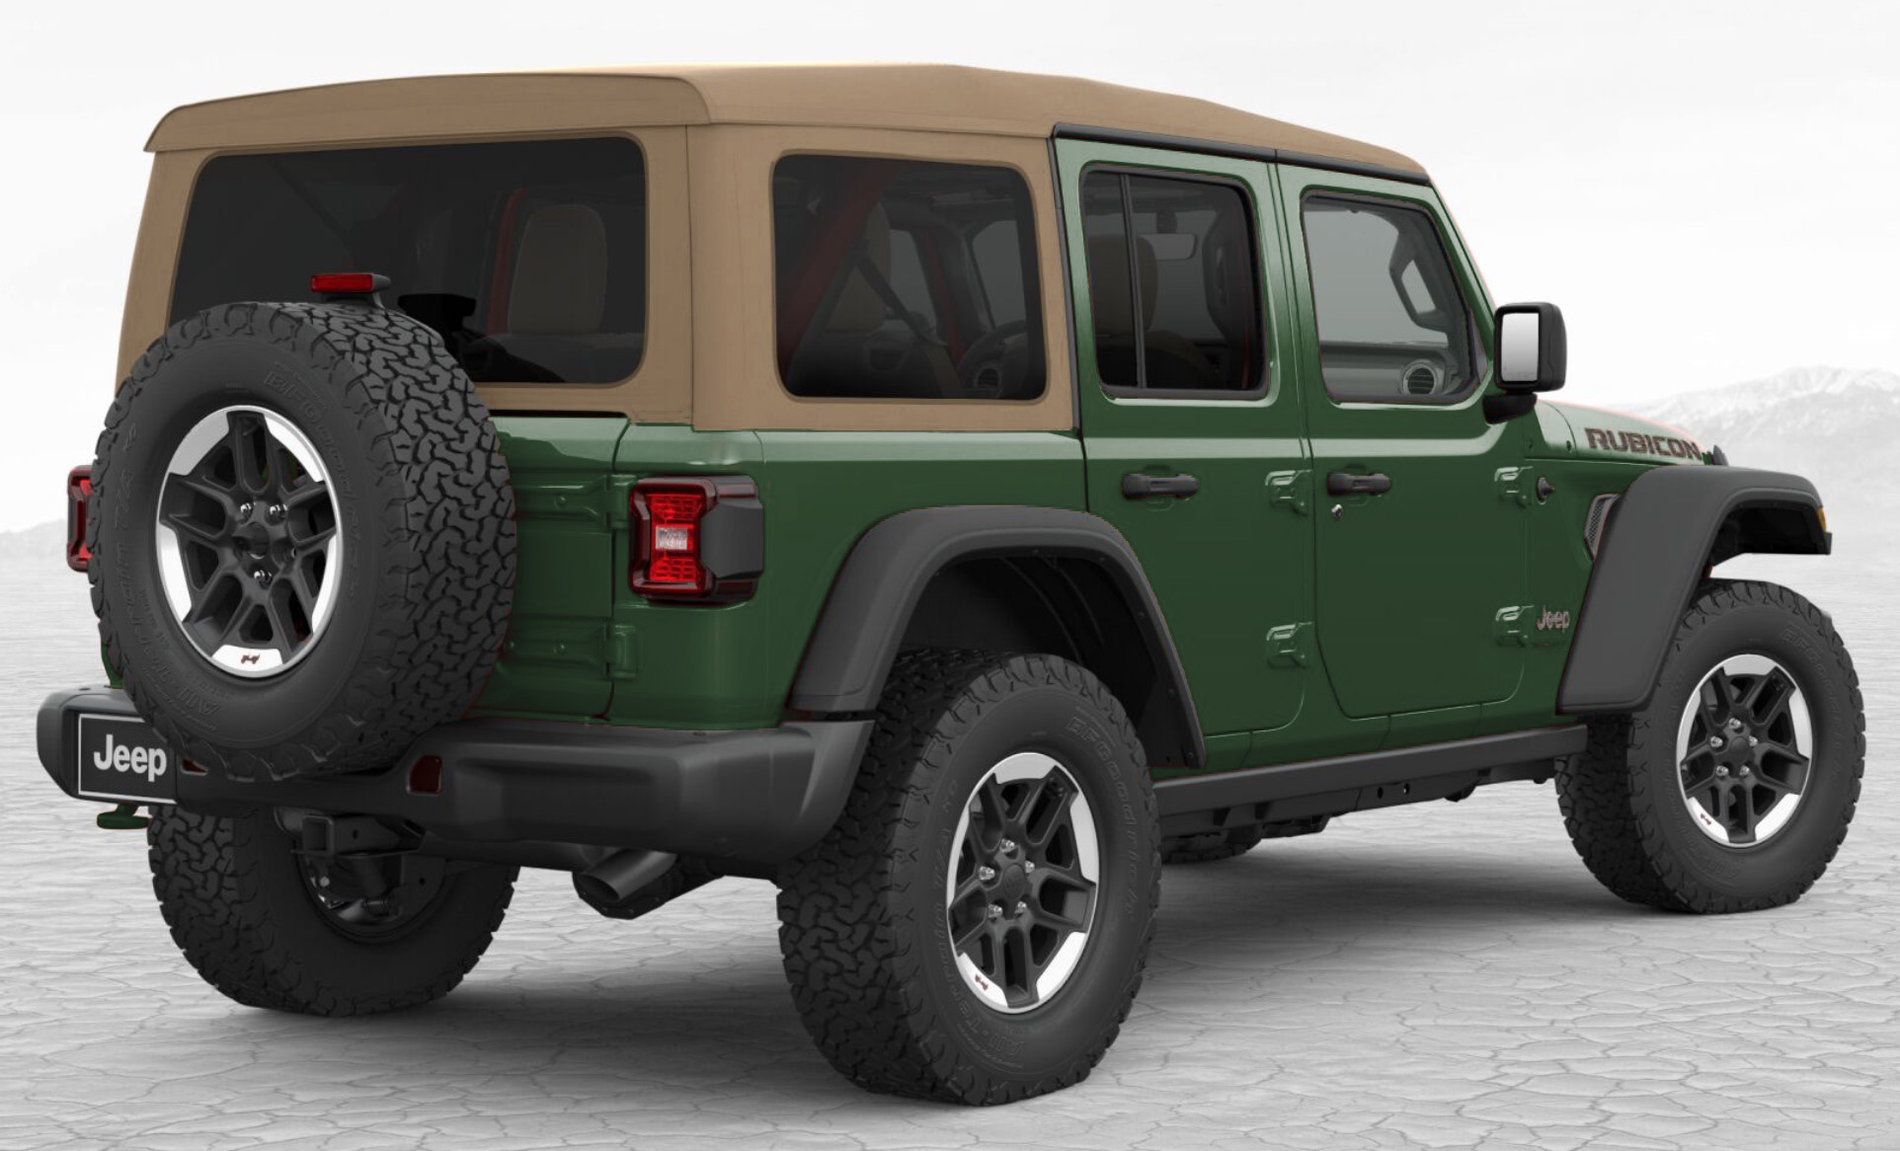 jl wrangler build and price configurator now available on page 27 2018 jeep. Black Bedroom Furniture Sets. Home Design Ideas